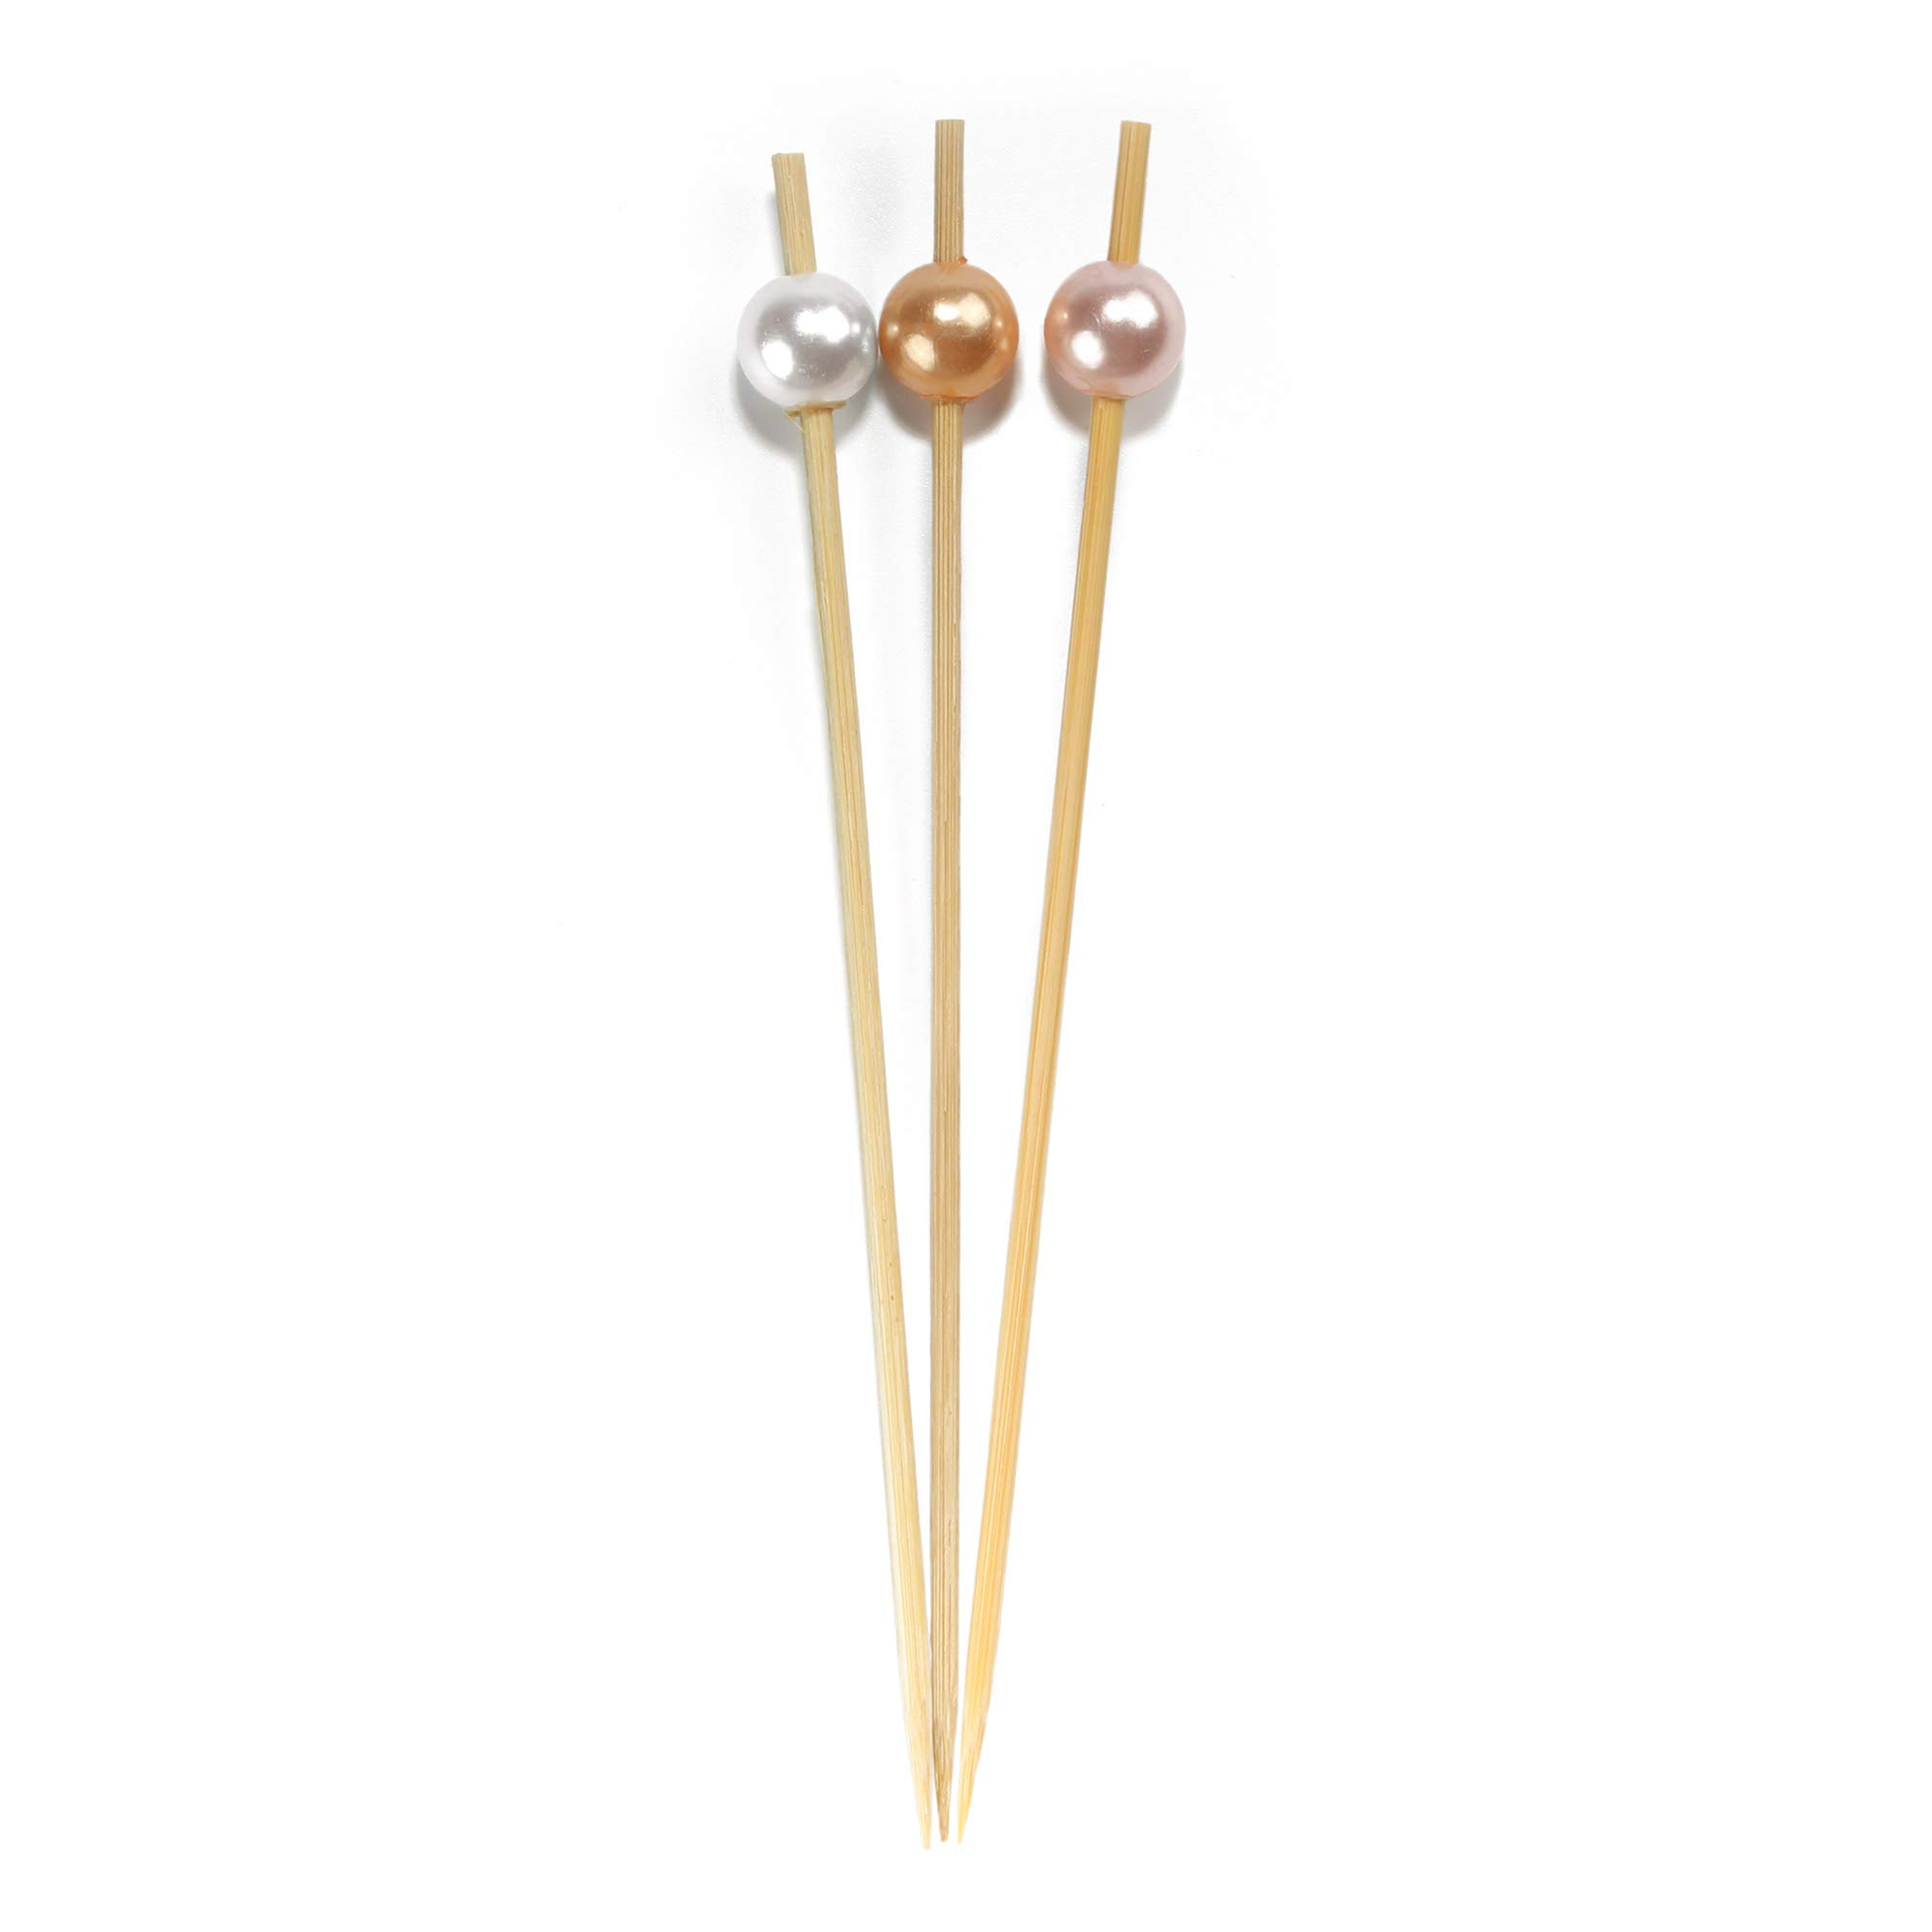 BambooMN 5.9'' Decorative Pearl End Cocktail Fruit Sandwich Picks Skewers for Catered Events, Holiday's, Restaurants or Buffets Party Supplies - 100pcs, Assort 96 (Champagne, Pink, White)